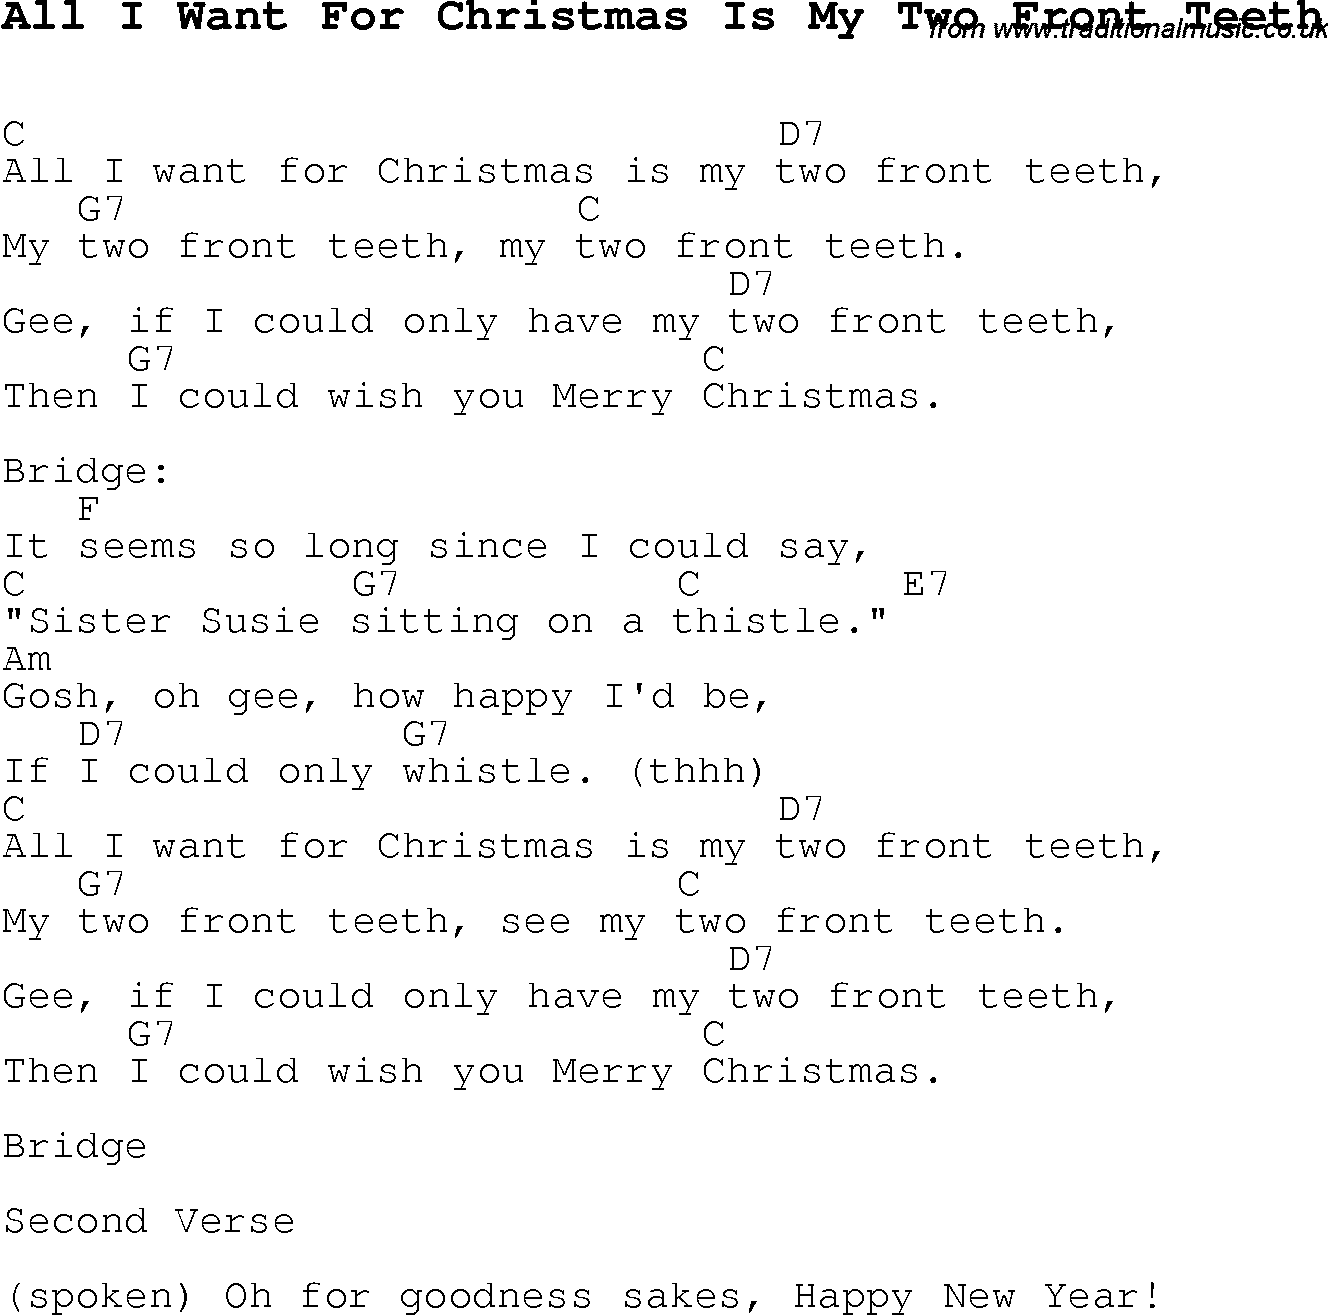 Lyrics All I Want For Christmas.Christmas Carol Song Lyrics With Chords For All I Want For